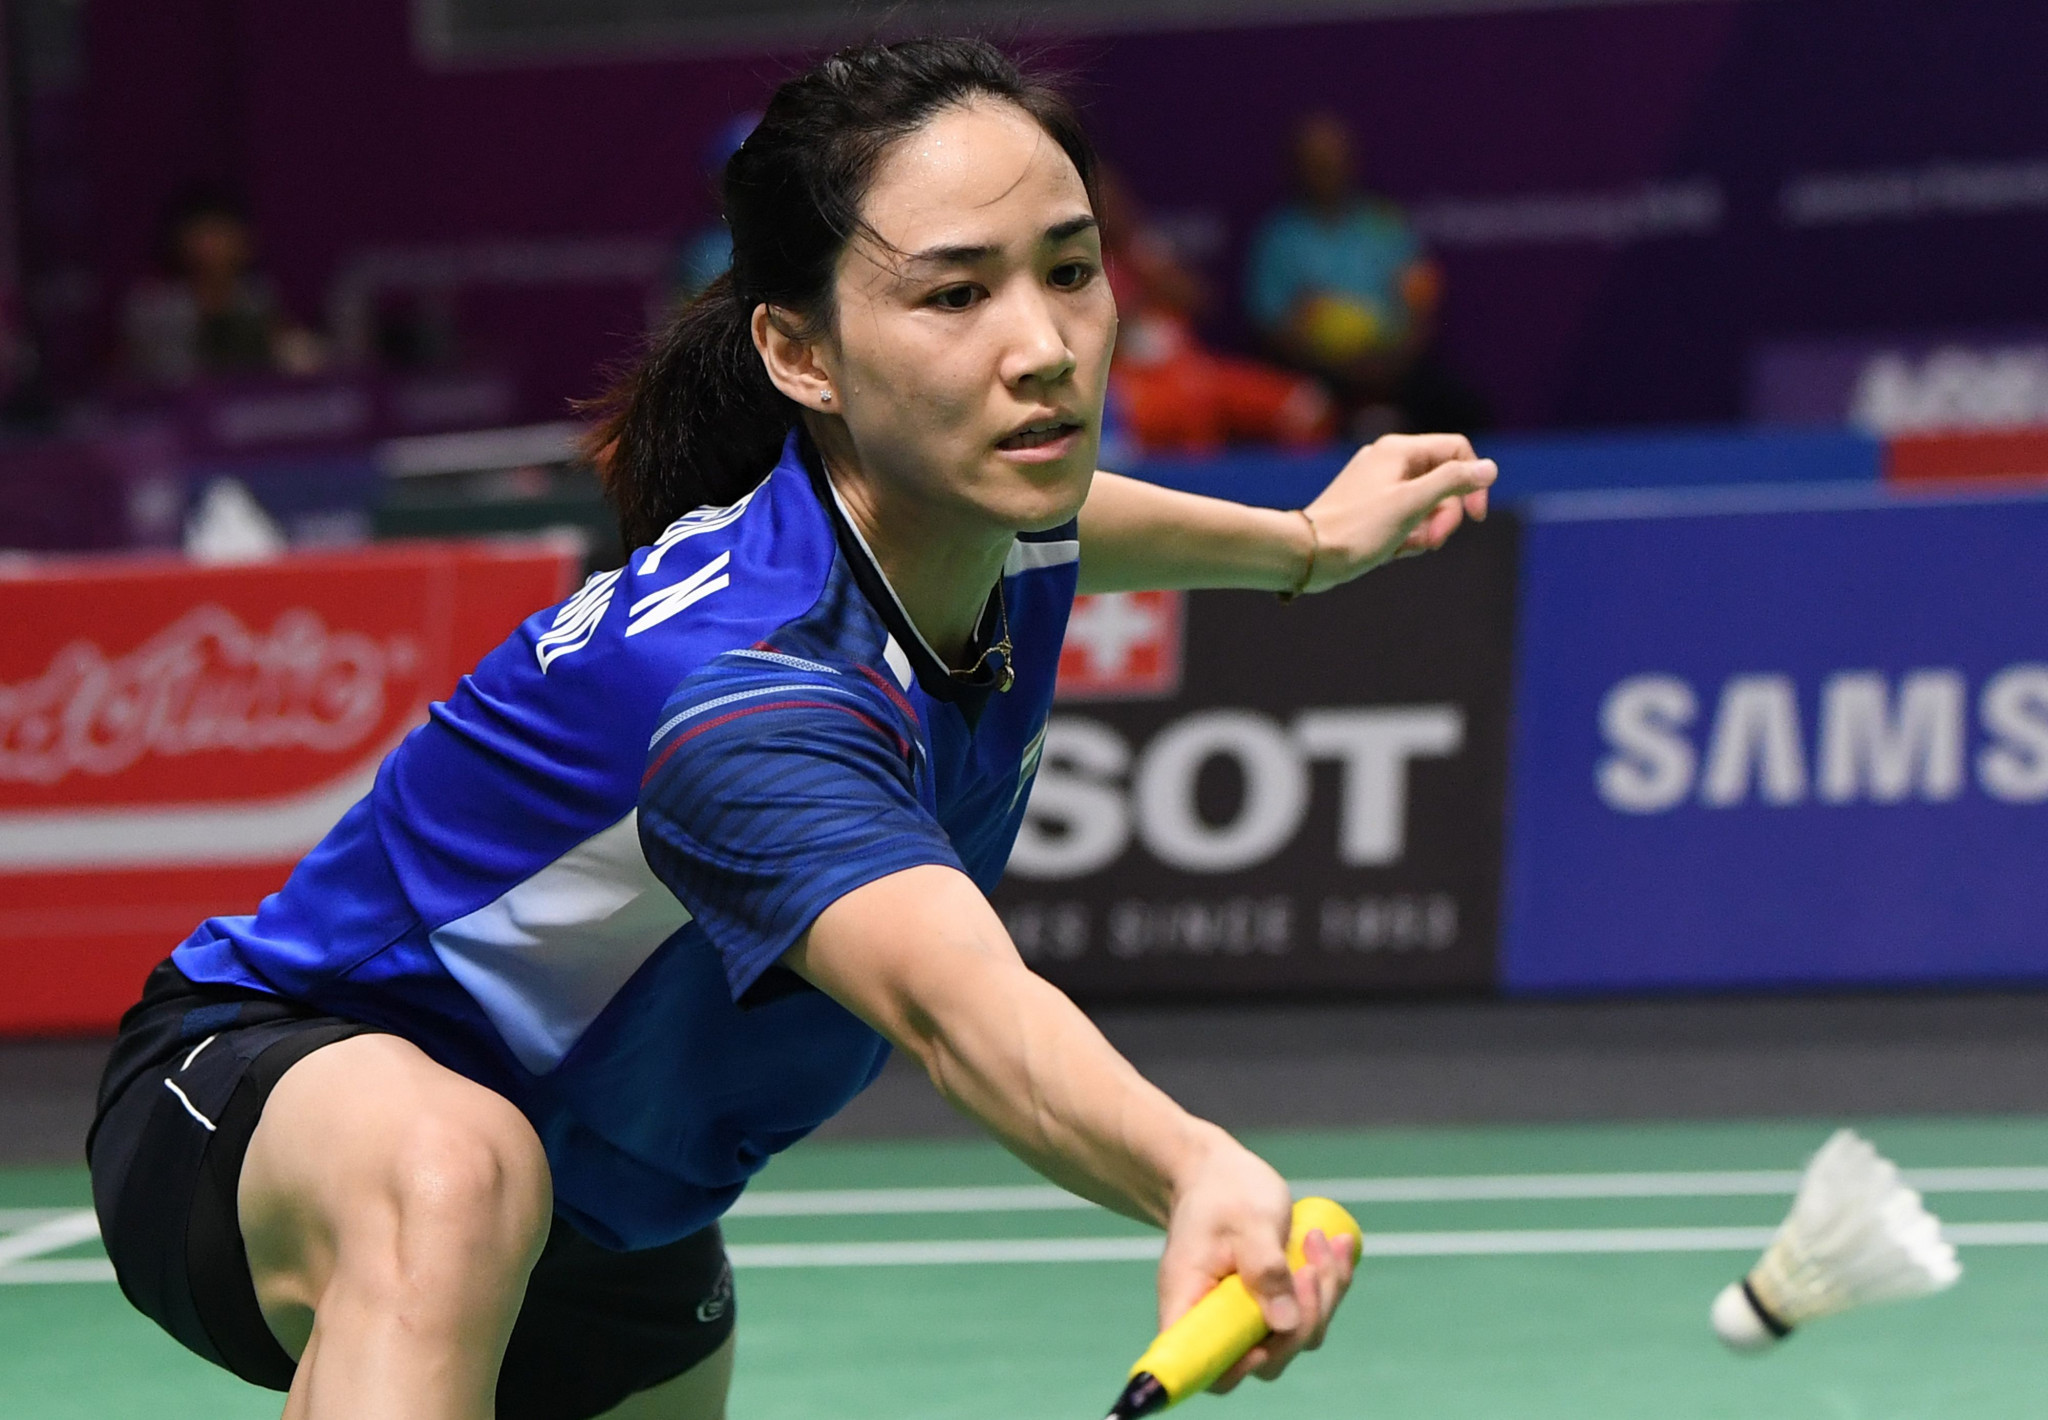 Thailand's Nitchaon Jindapol will look to defend her BWF Thailand Masters title in front of a home crowd ©Getty Images